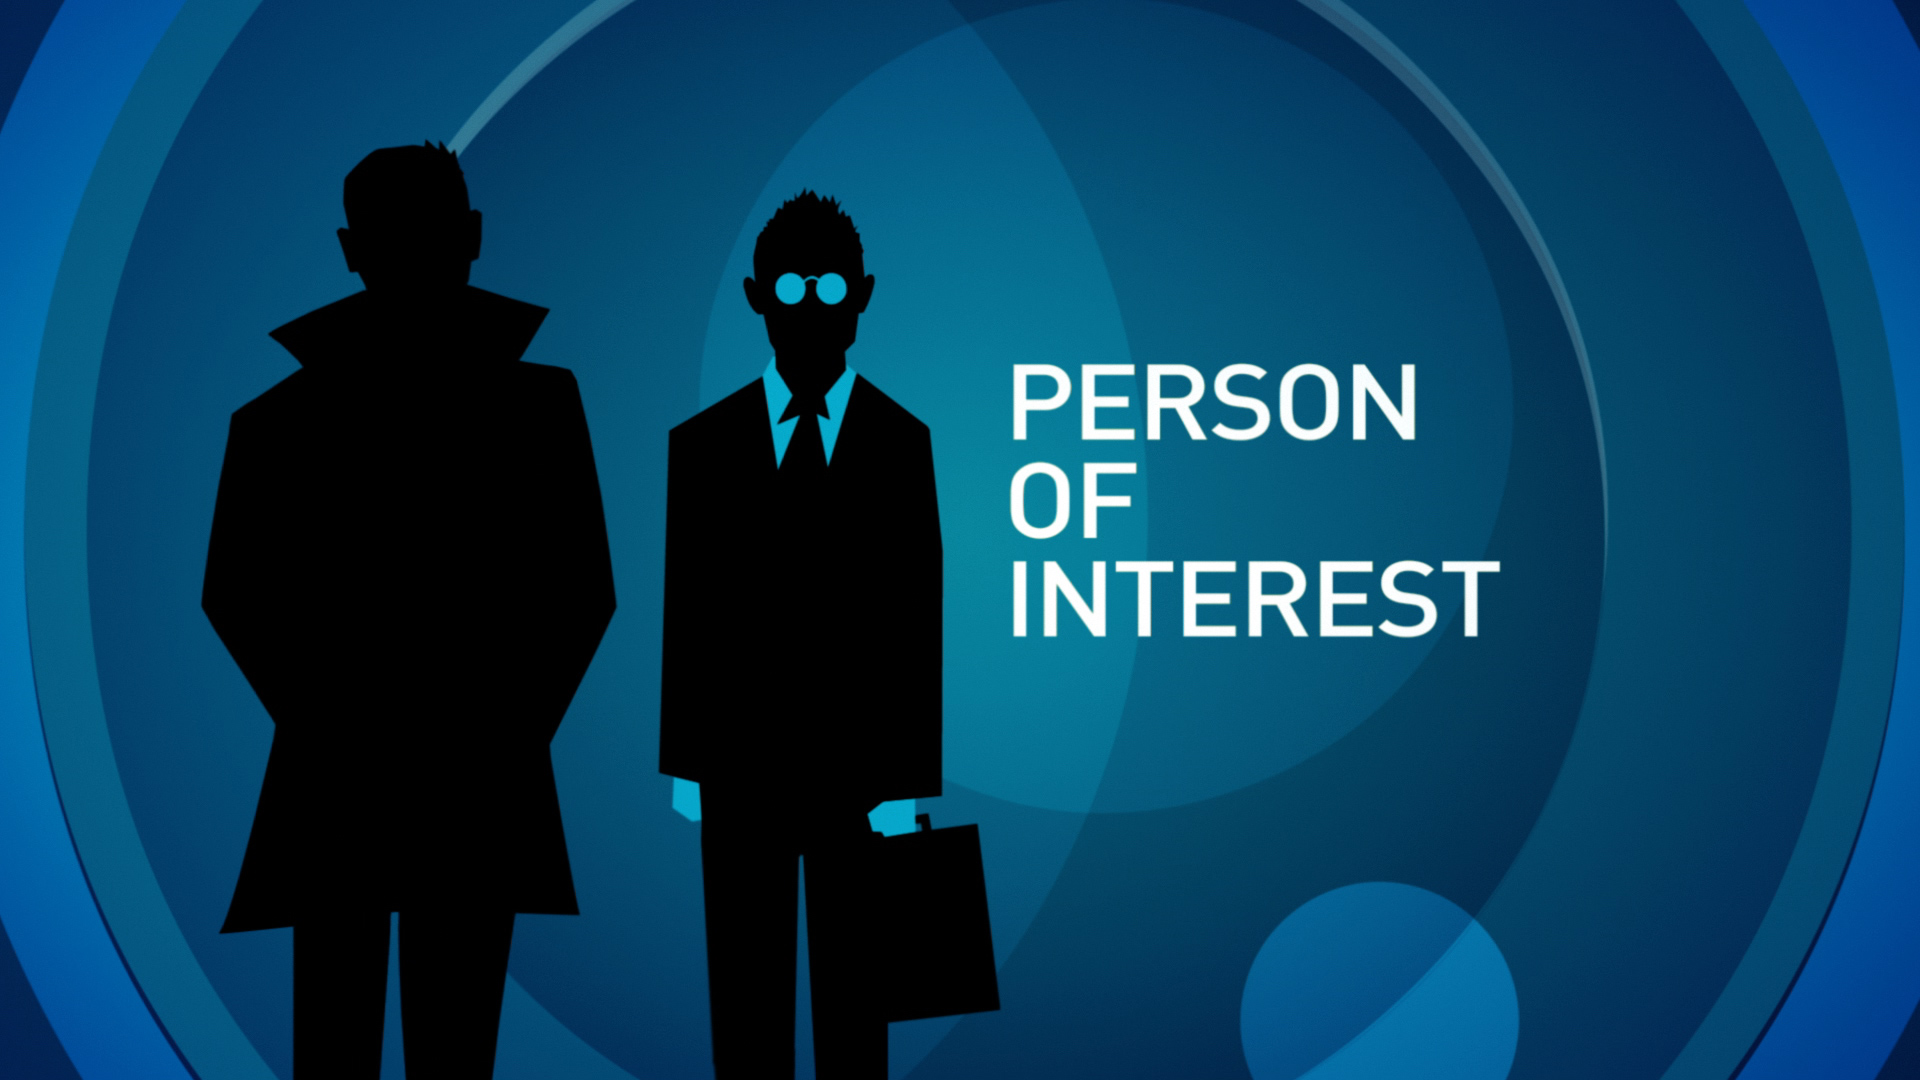 person of interest wallpapers 1920x1080 - photo #9